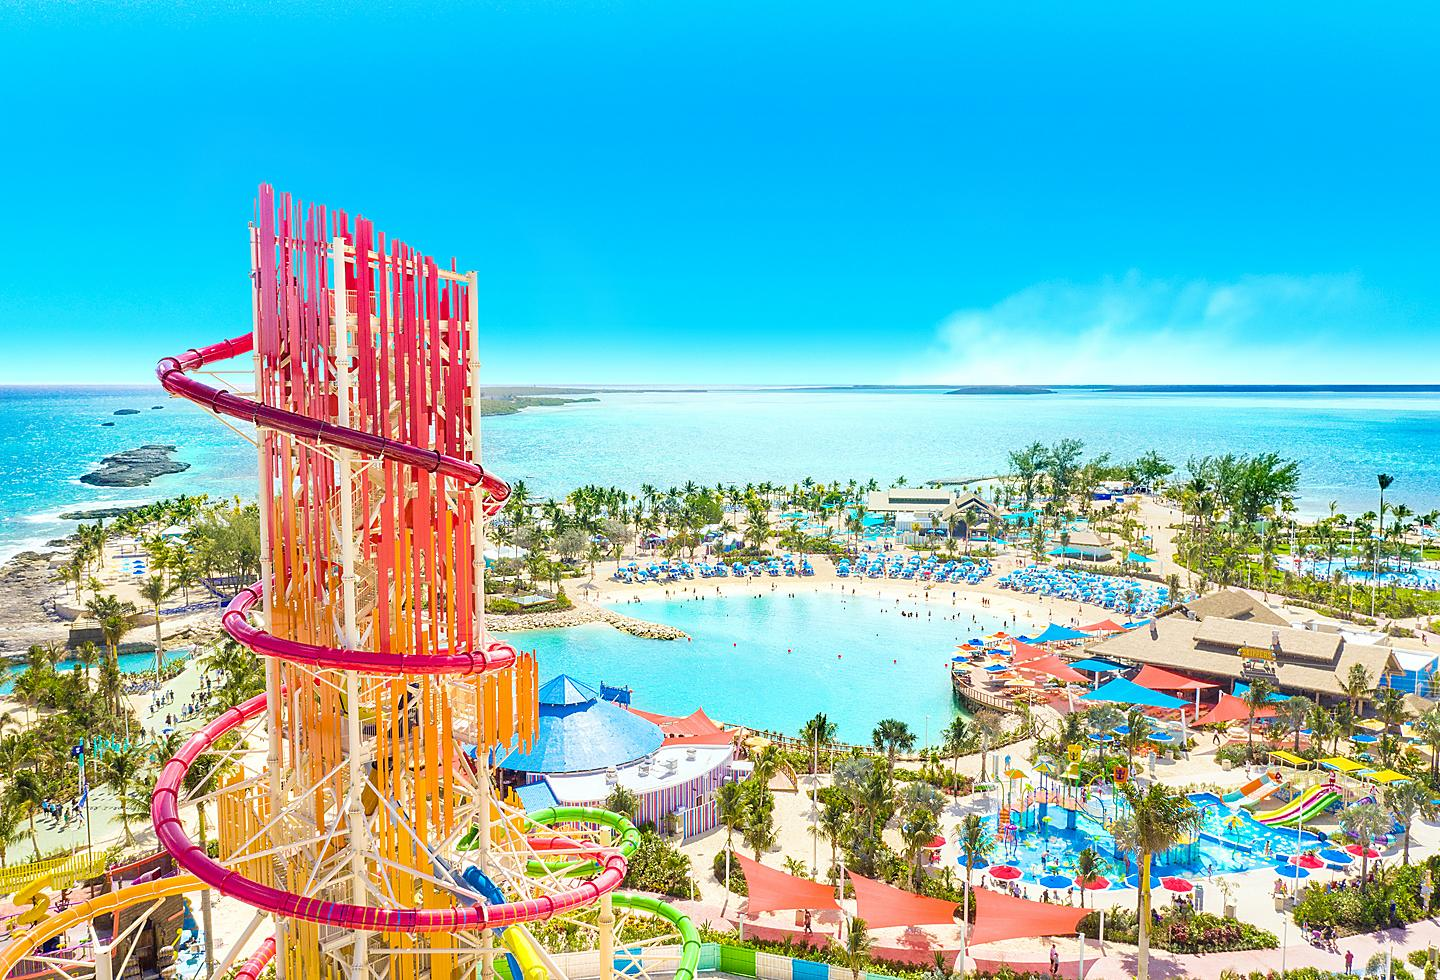 Aerial View of Slides at Perfect Day Island at Cococay